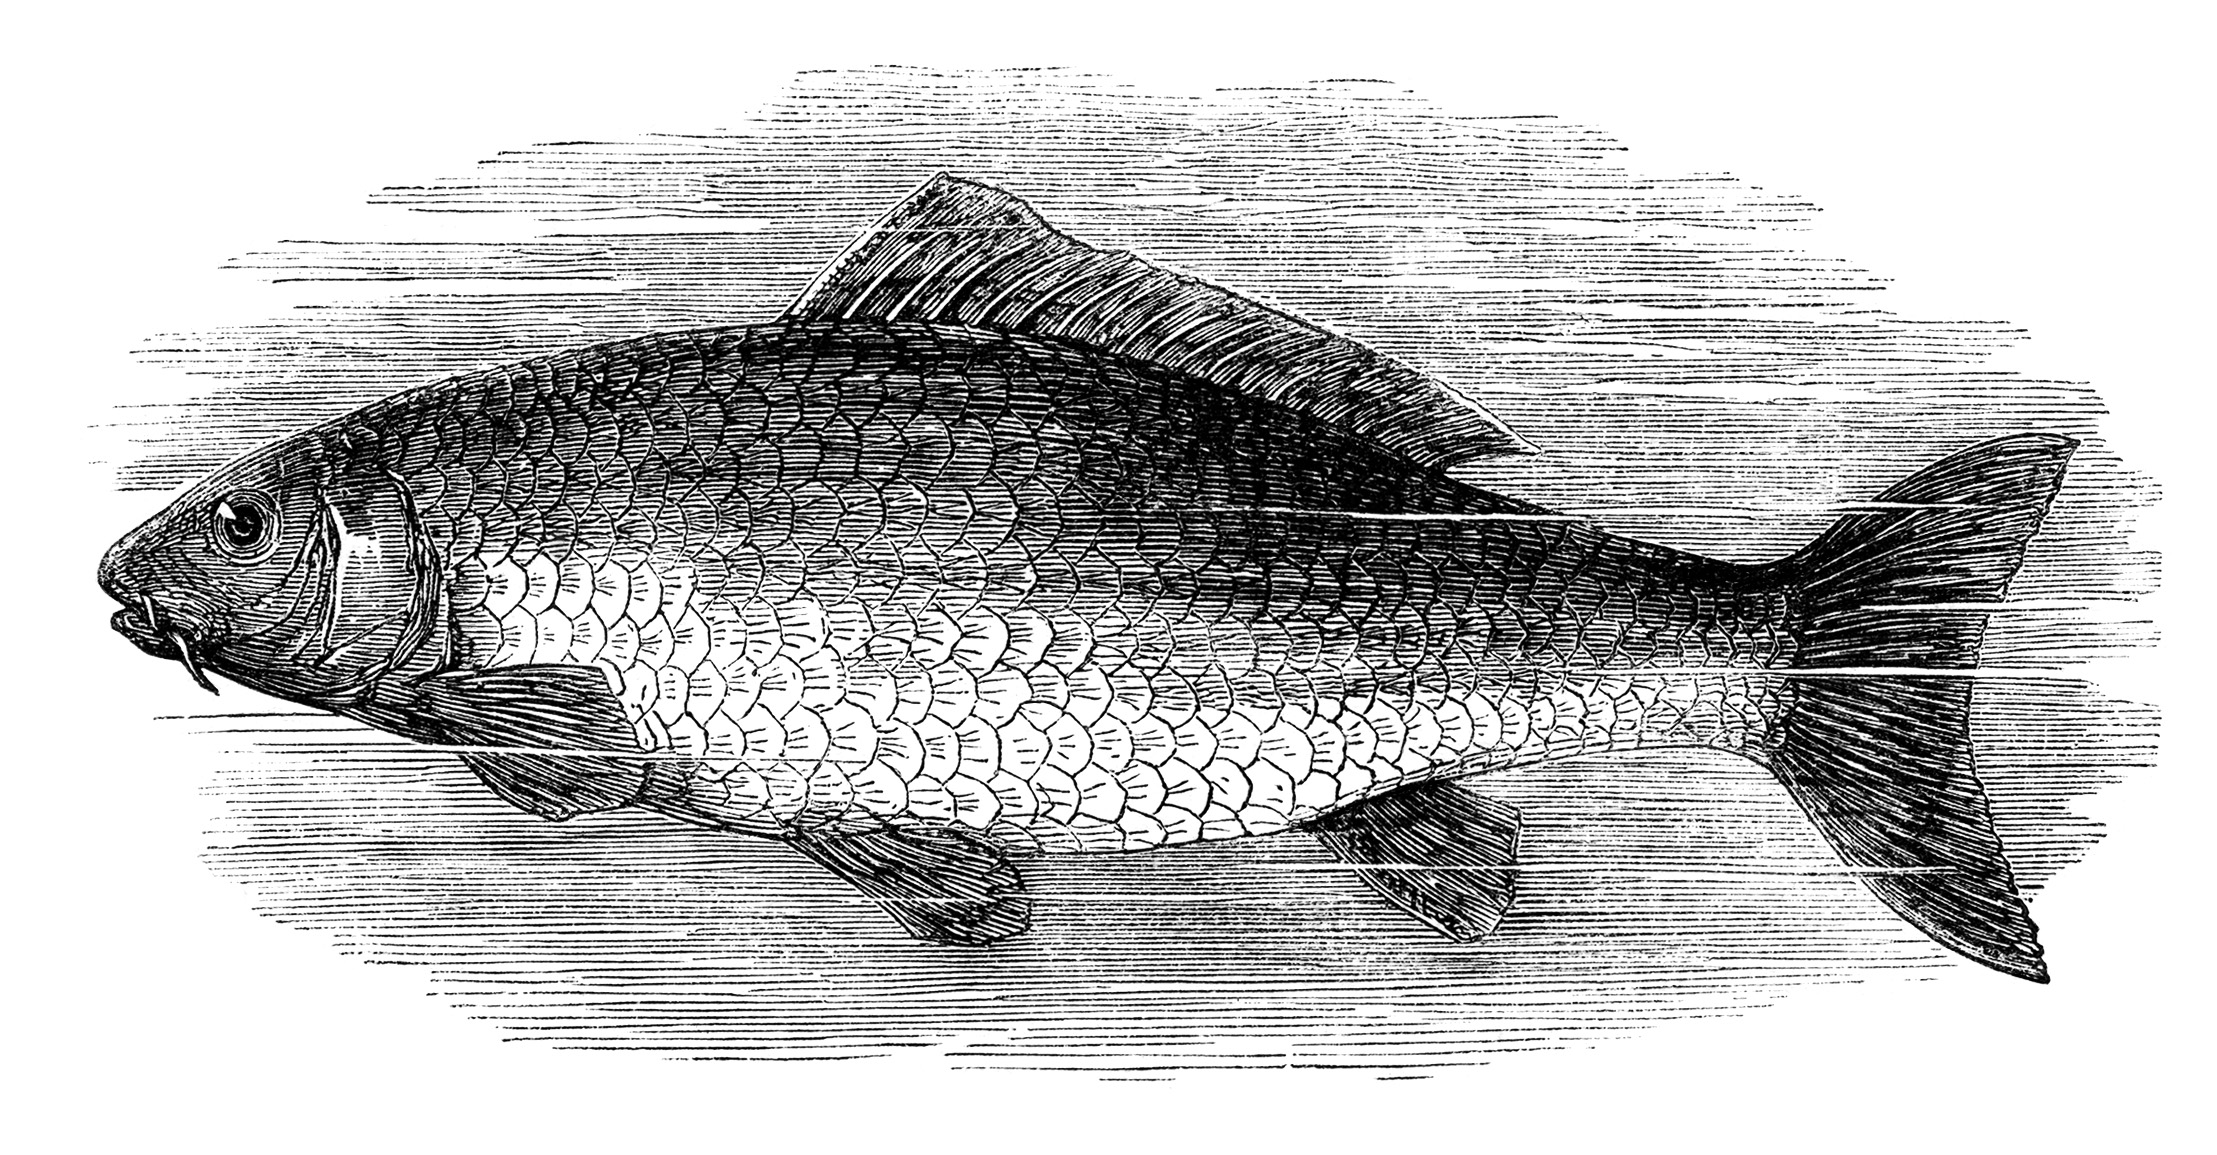 Free Vintage Fish Images ~ Salmon and Carp   Old Design ...